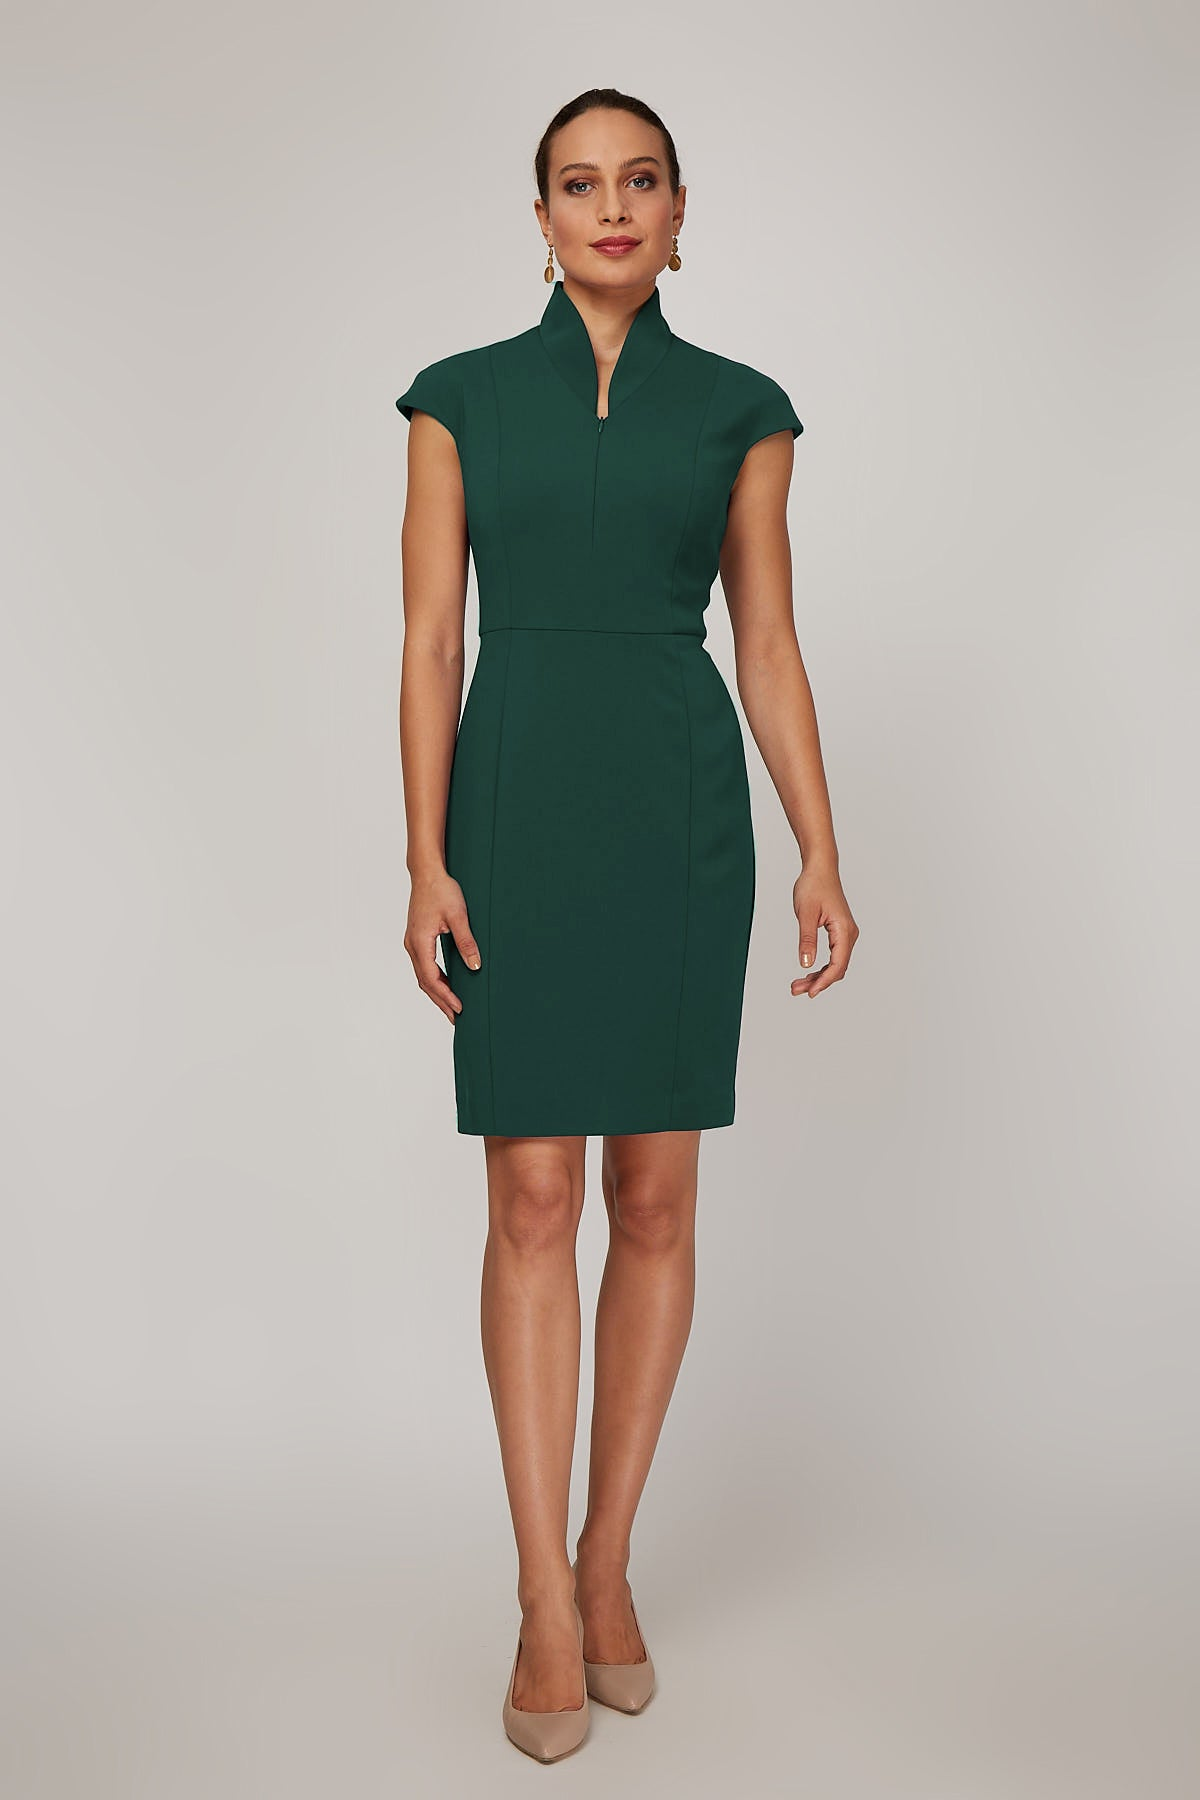 Evelyn Dress - Hunter Green Pre-order